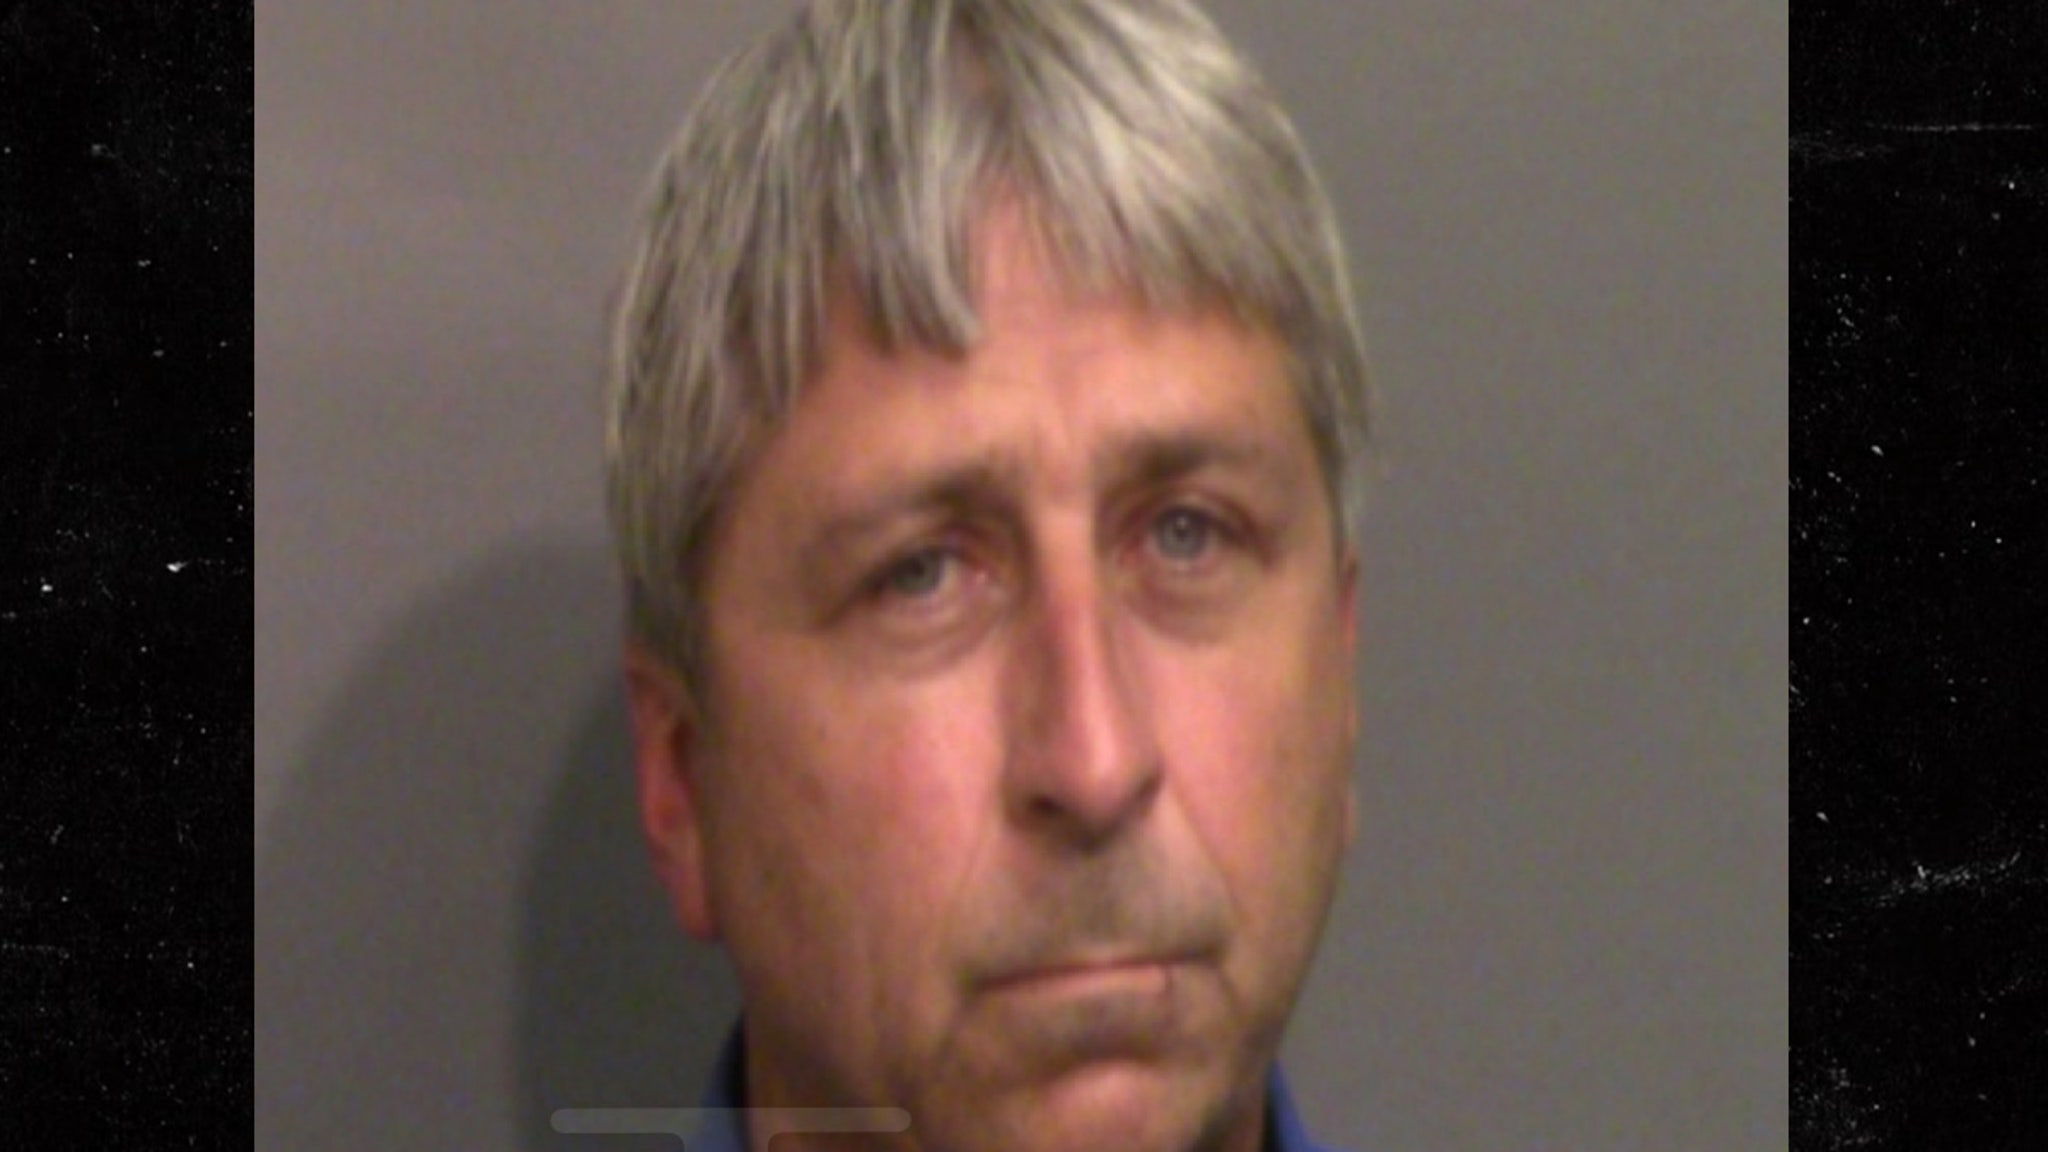 Ahmaud Arbery Videographer William Bryan Confined Victim ... Charged with False Imprisonment, Murder